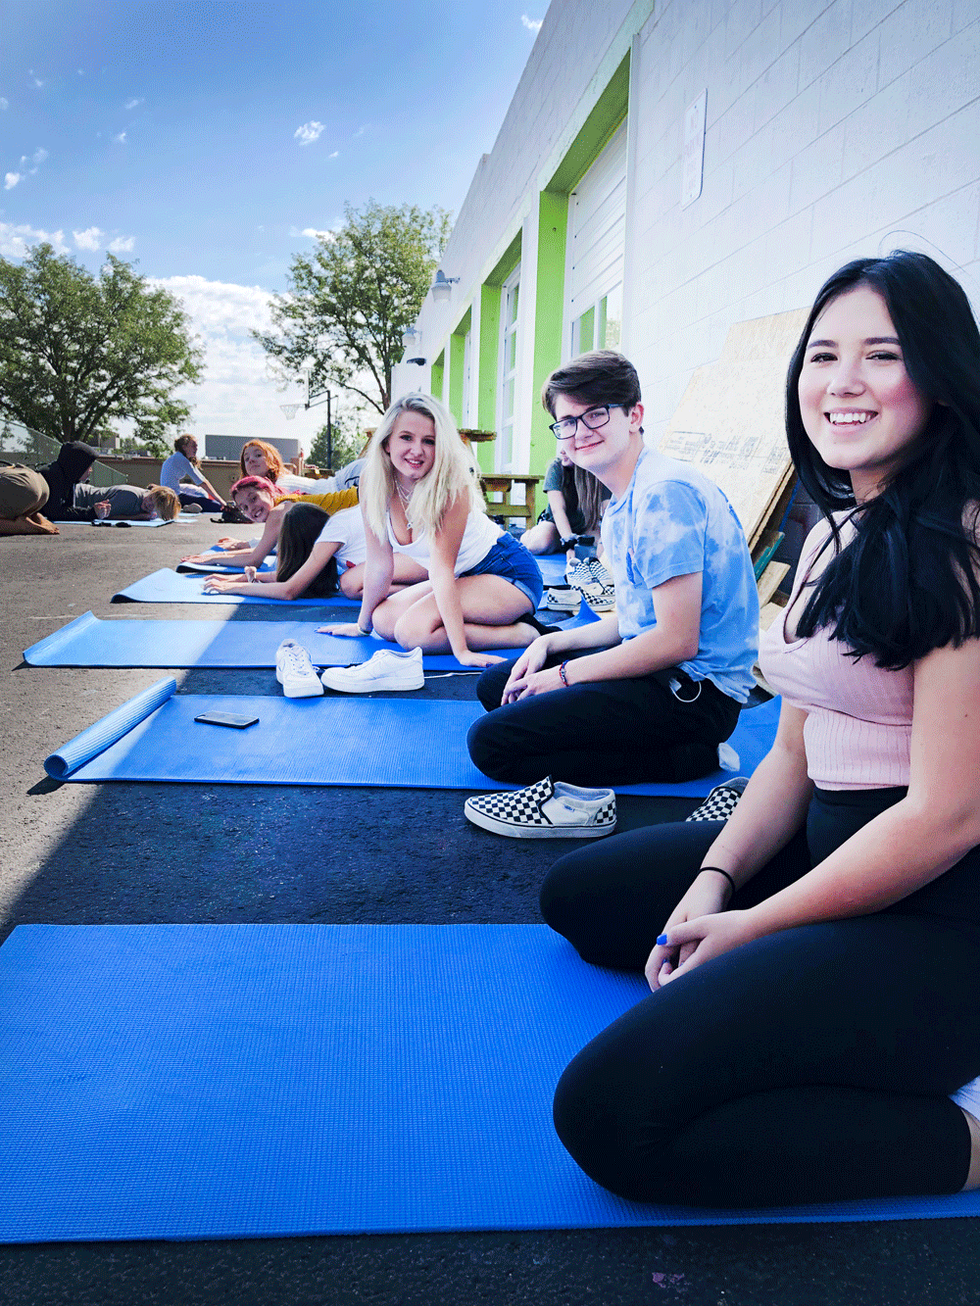 Outdoor yoga as part of our wellness experience